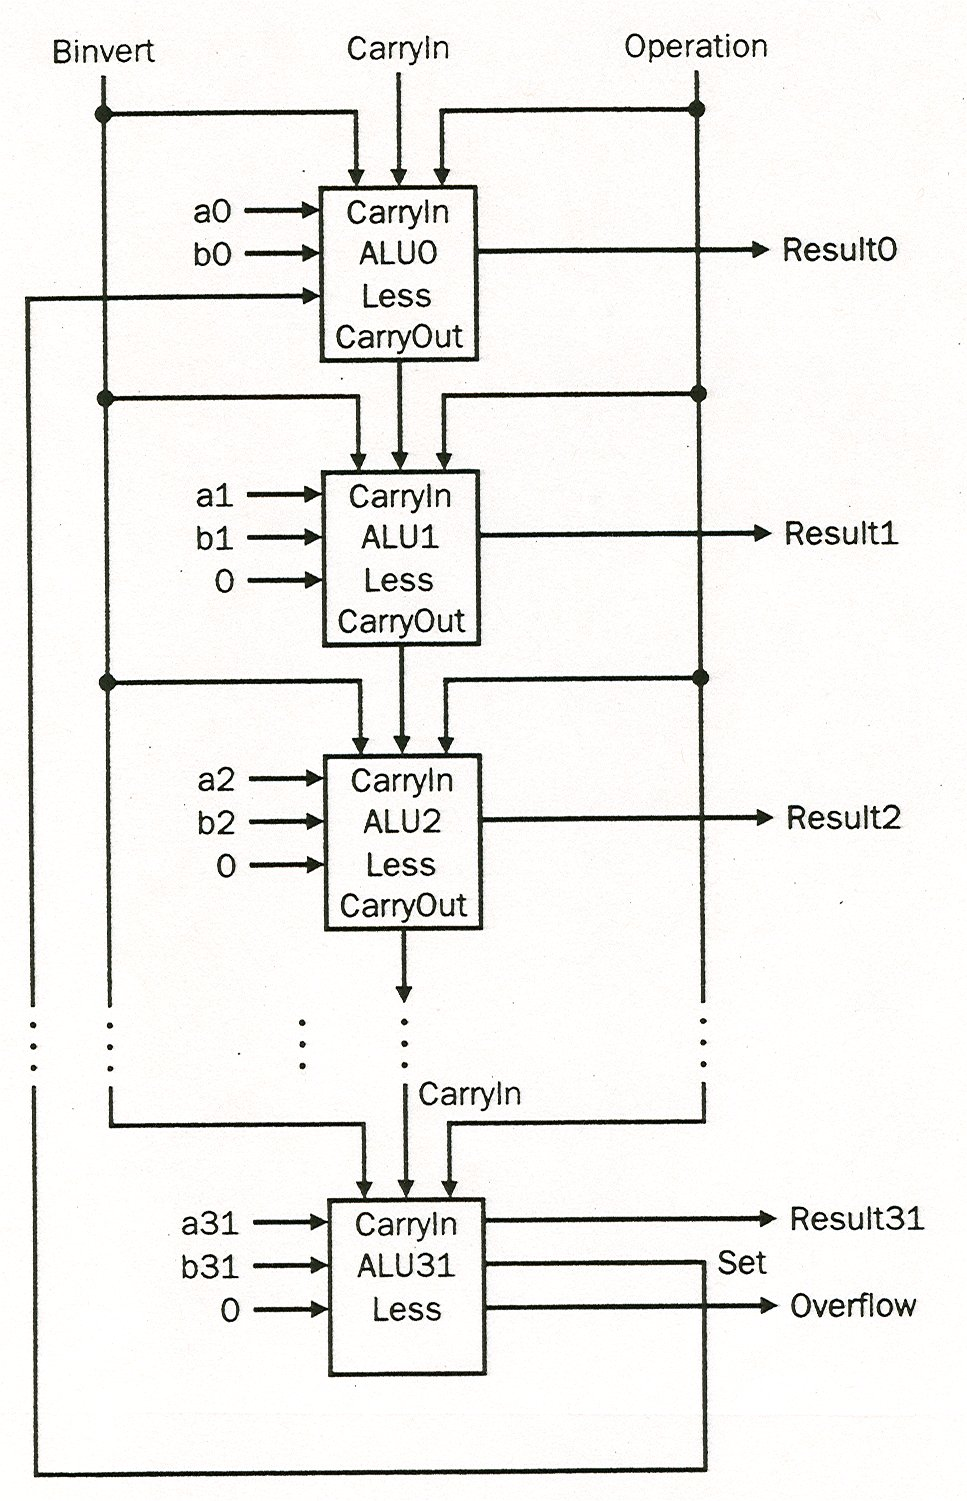 Cmsc 313 Lecture 27 Arithmetic Logic Unit Diagram The Overflow Detection Is In Every Stage Yet Only Used Last Bit Slices Are Wired Together To Form A Simple Alu